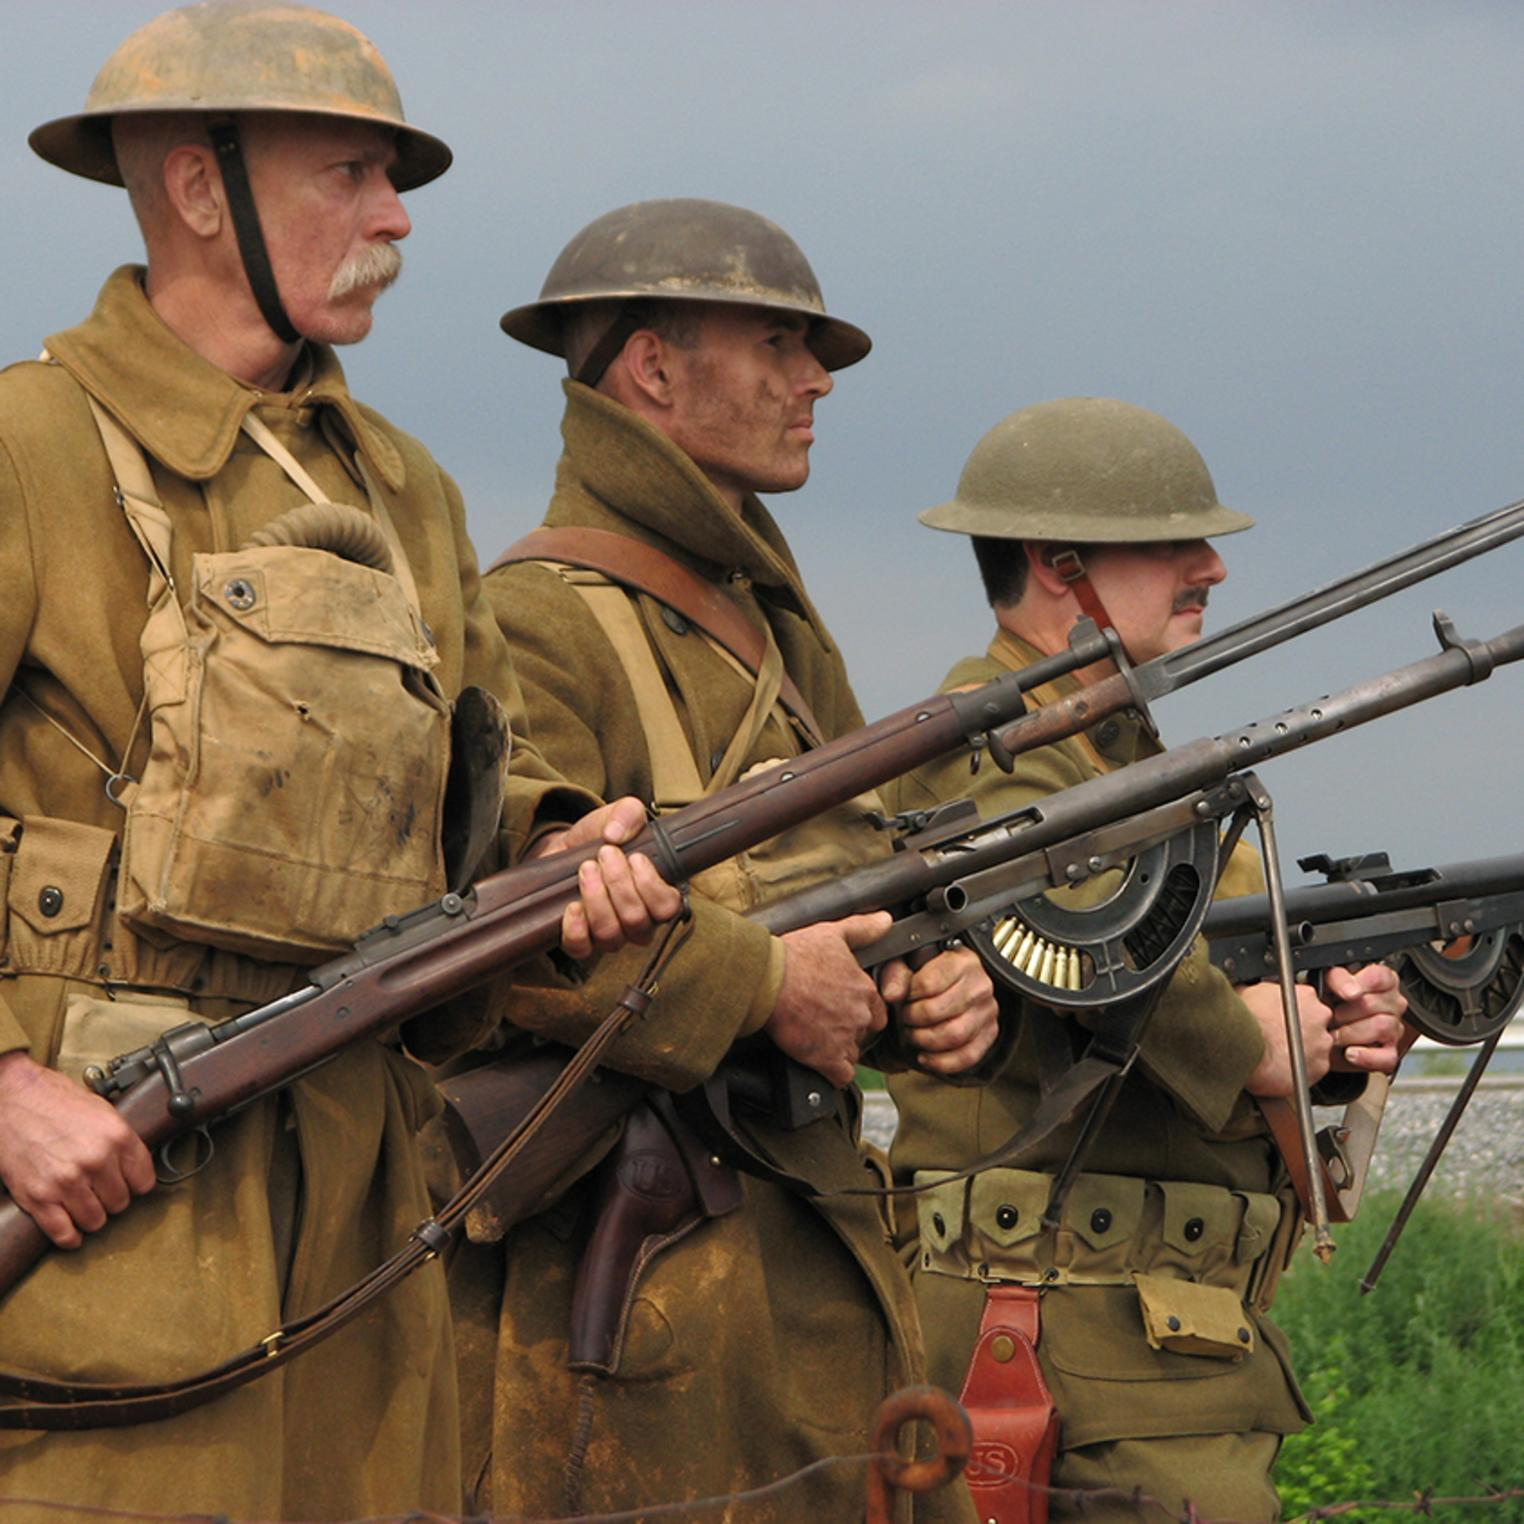 WWI re-enactors at USAHEC